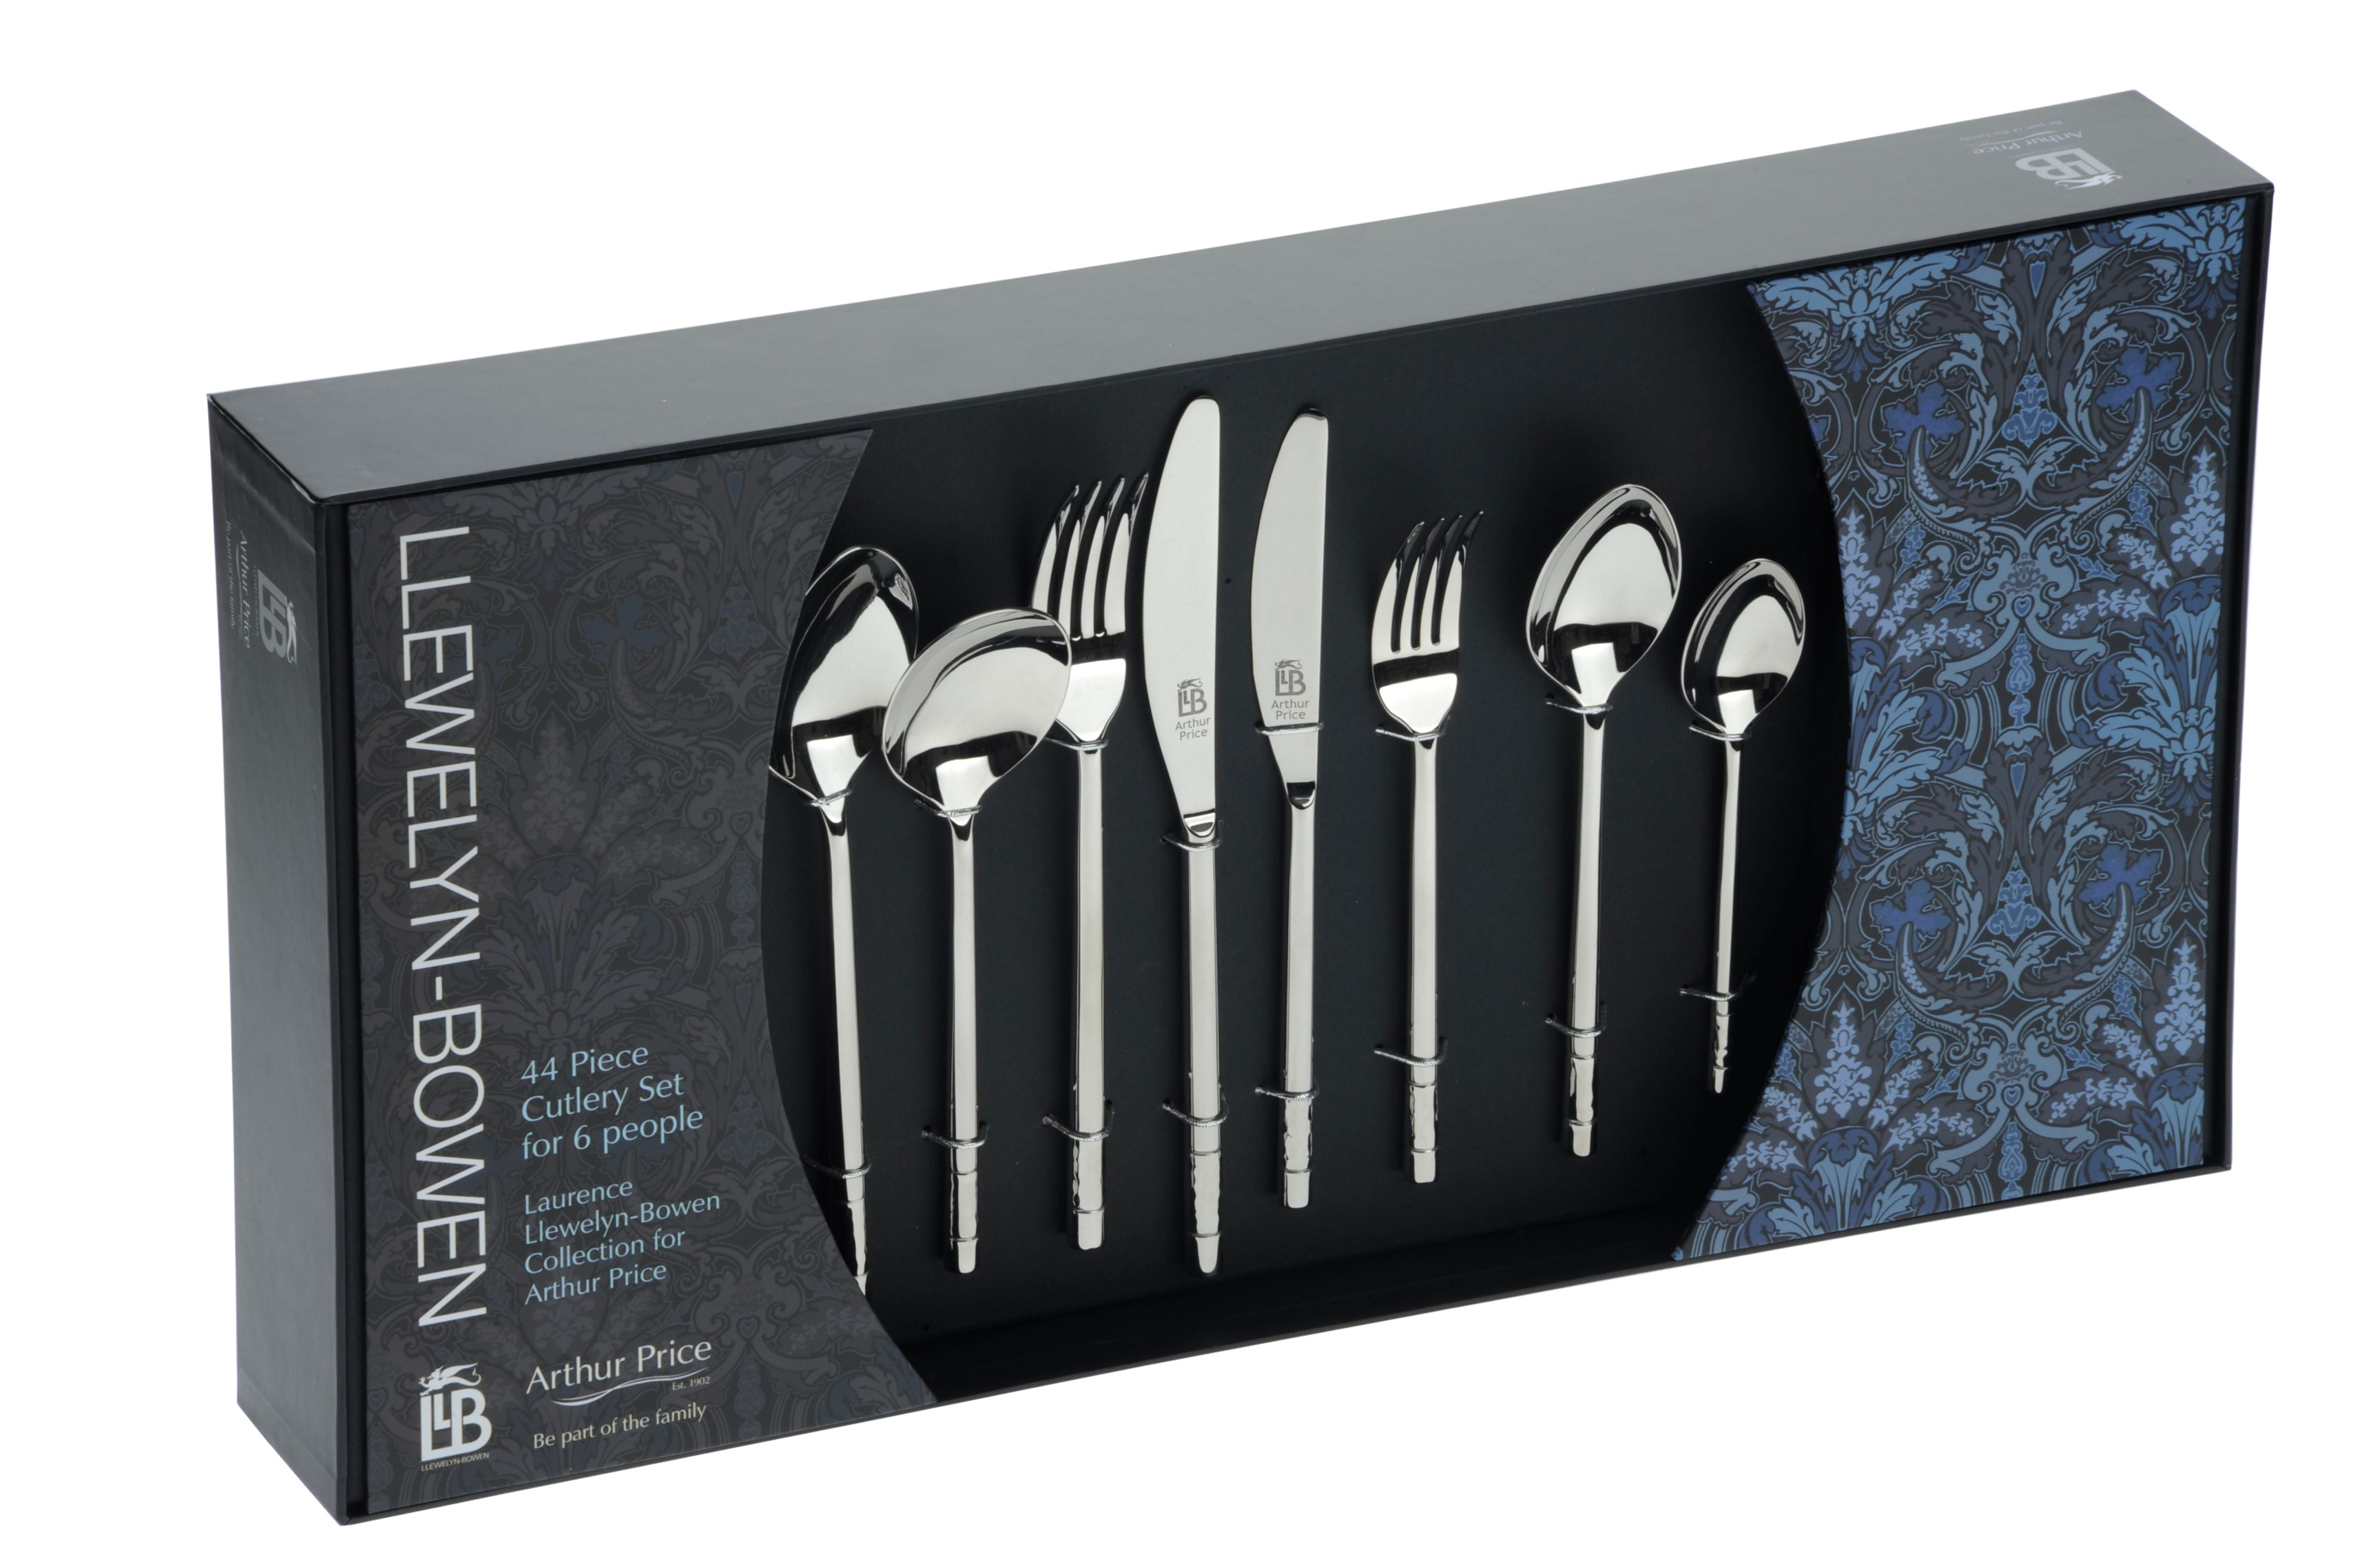 44 piece 6 person boxed set